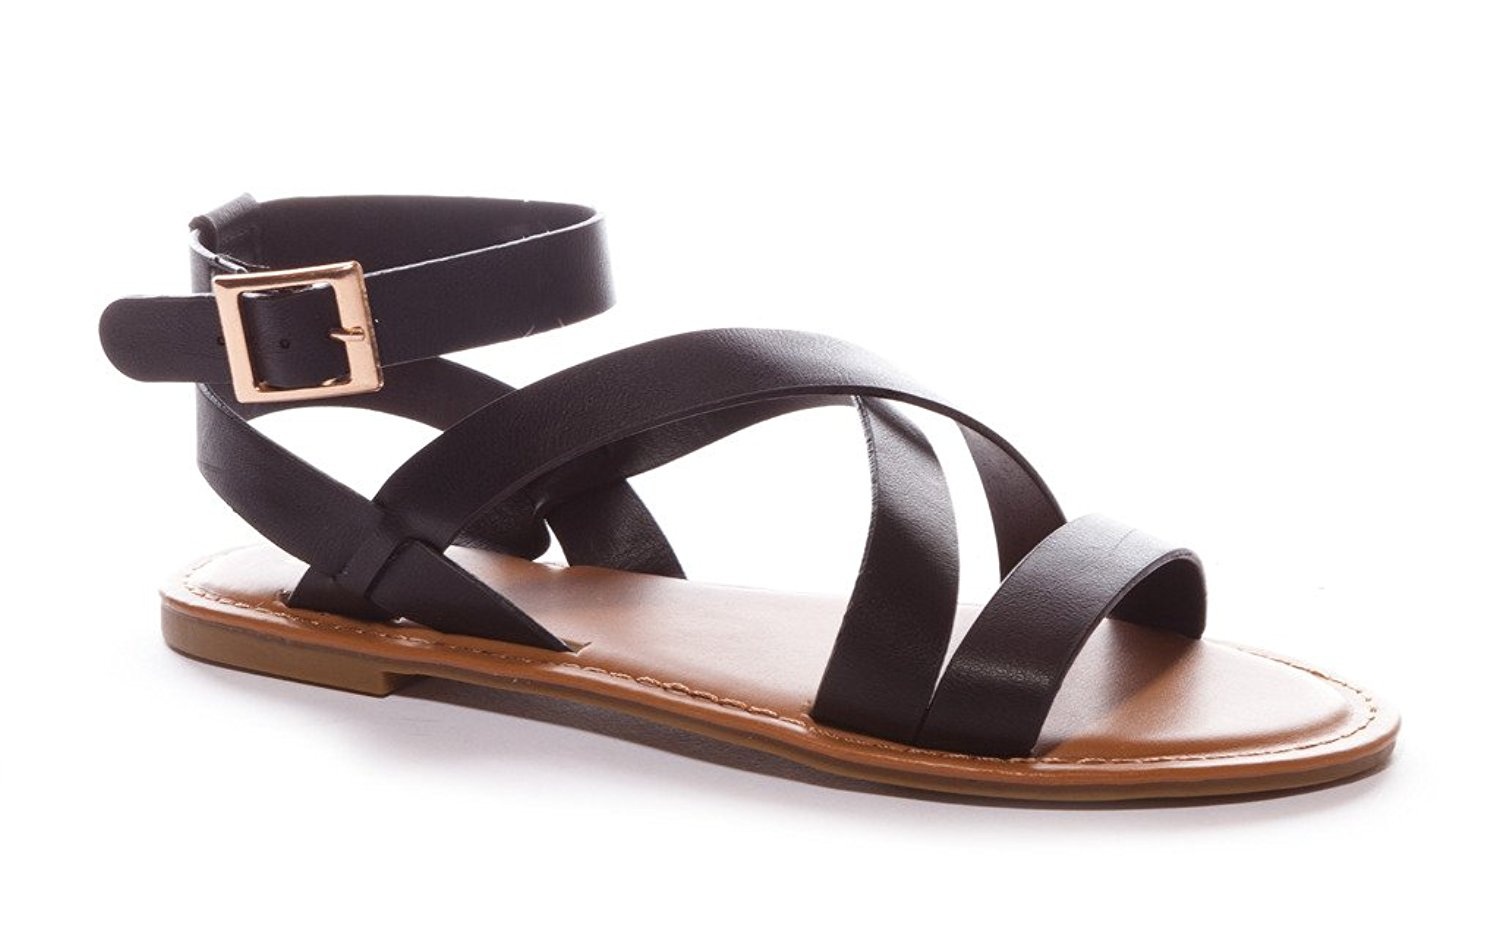 50c30fda20a7 Get Quotations · Bamboo Women s Strappy Gladiator Ankle Wrap Flat Sandal